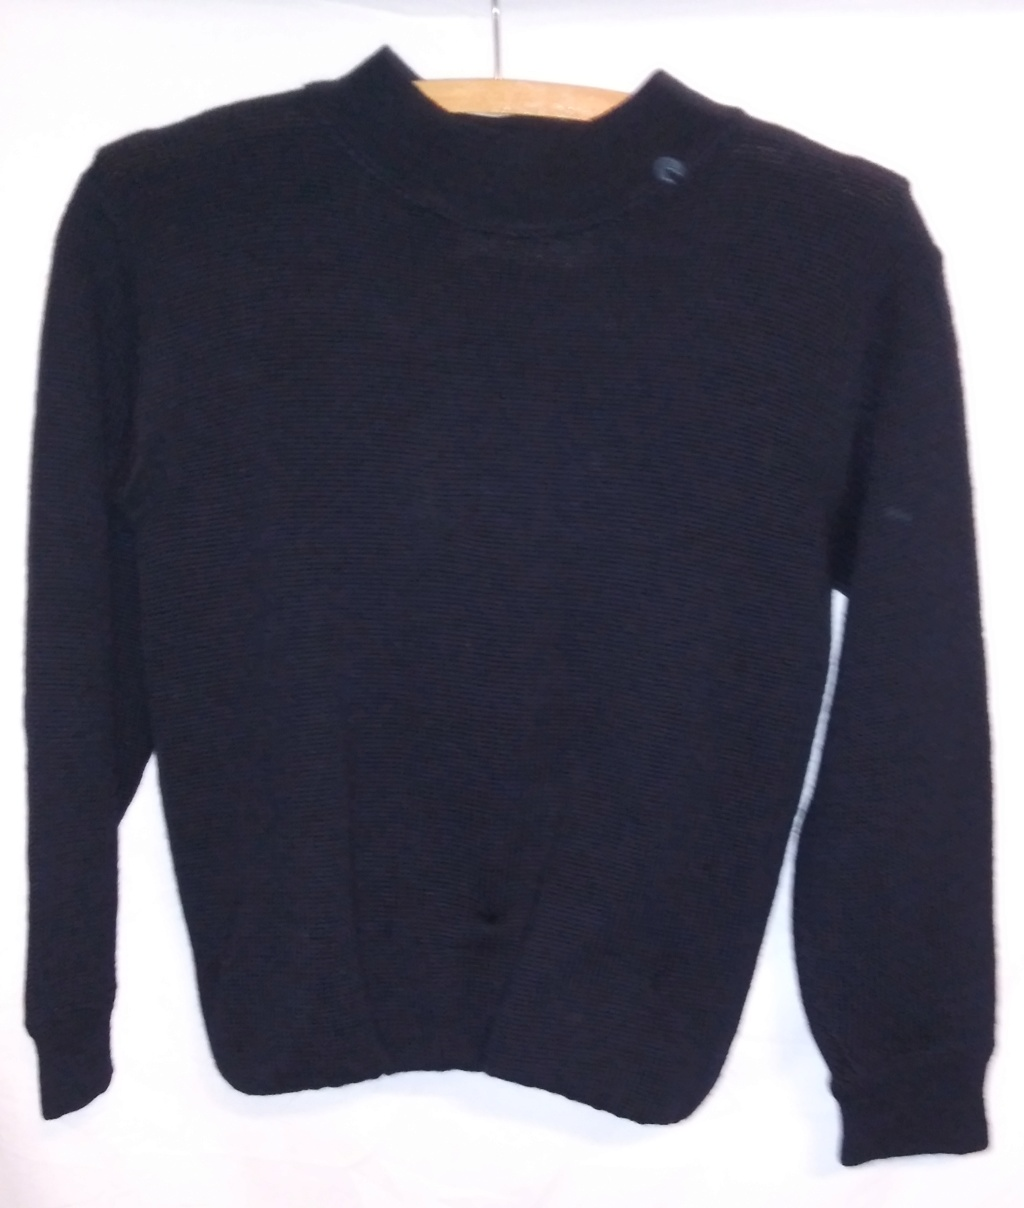 My Navy Jumper Collection - Page 2 20191225